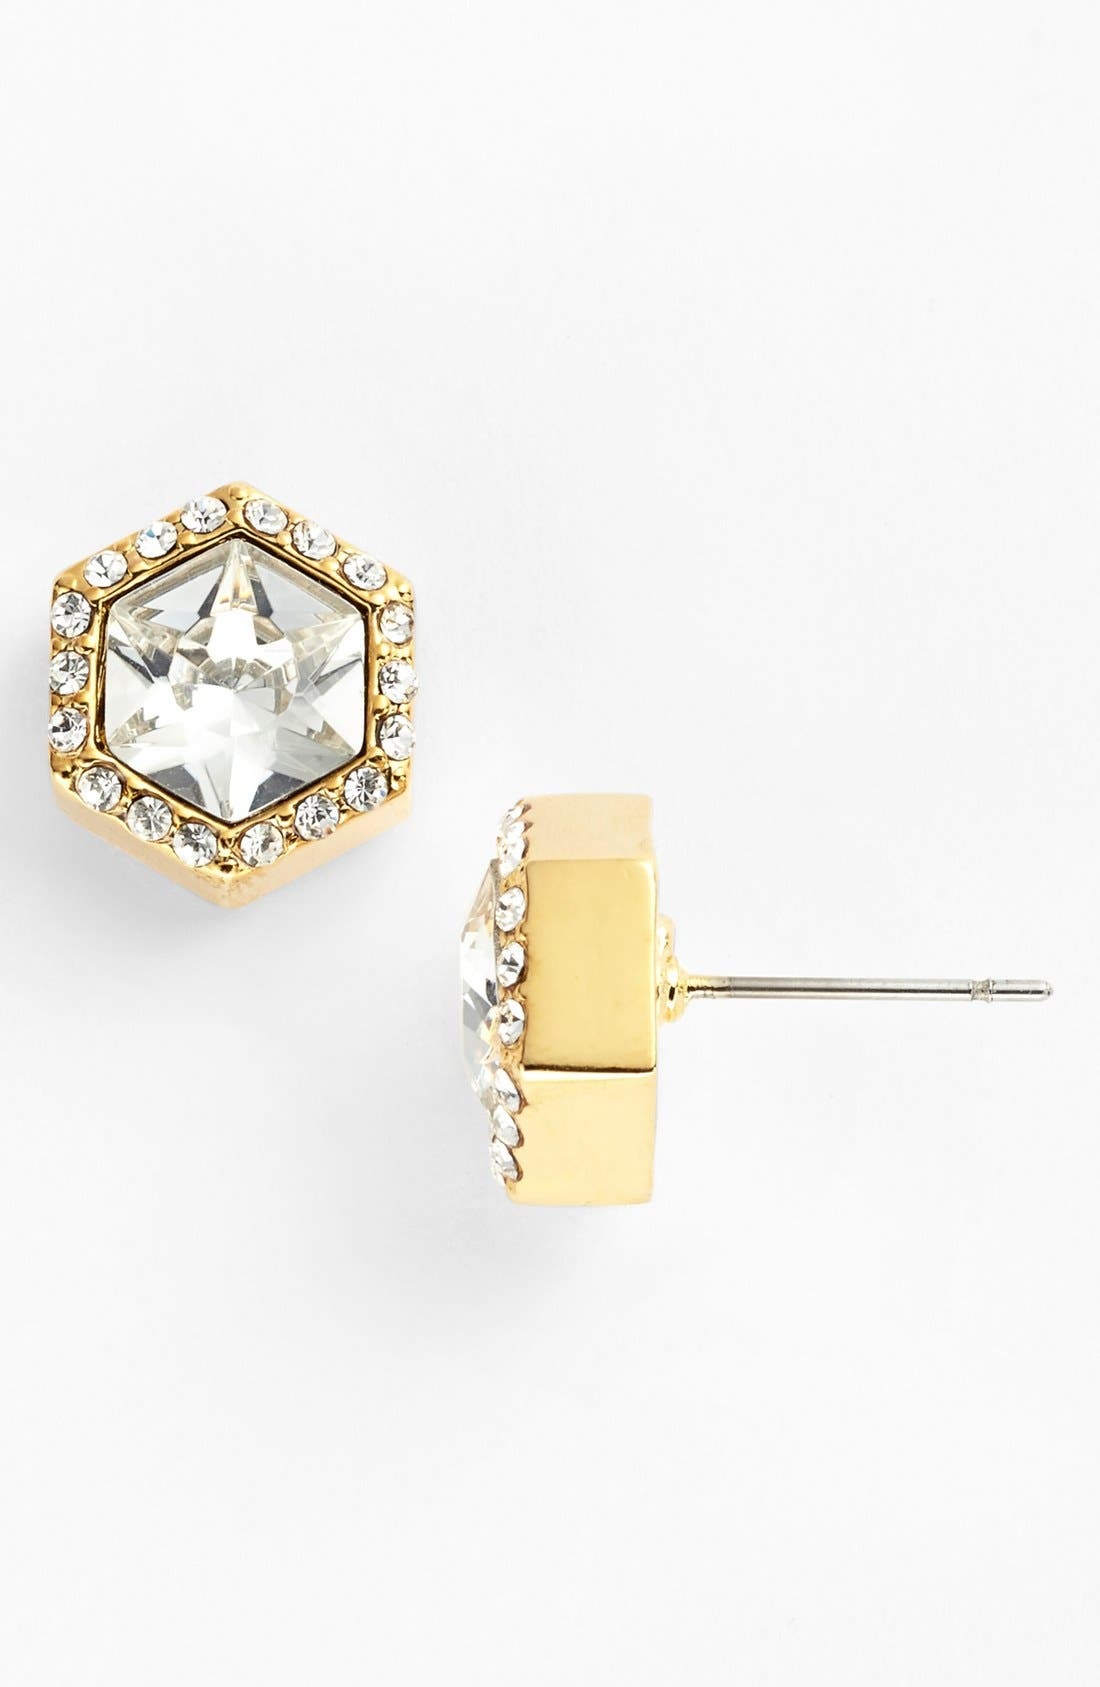 Main Image - Vince Camuto 'Diamonds in the Sky' Stud Earrings